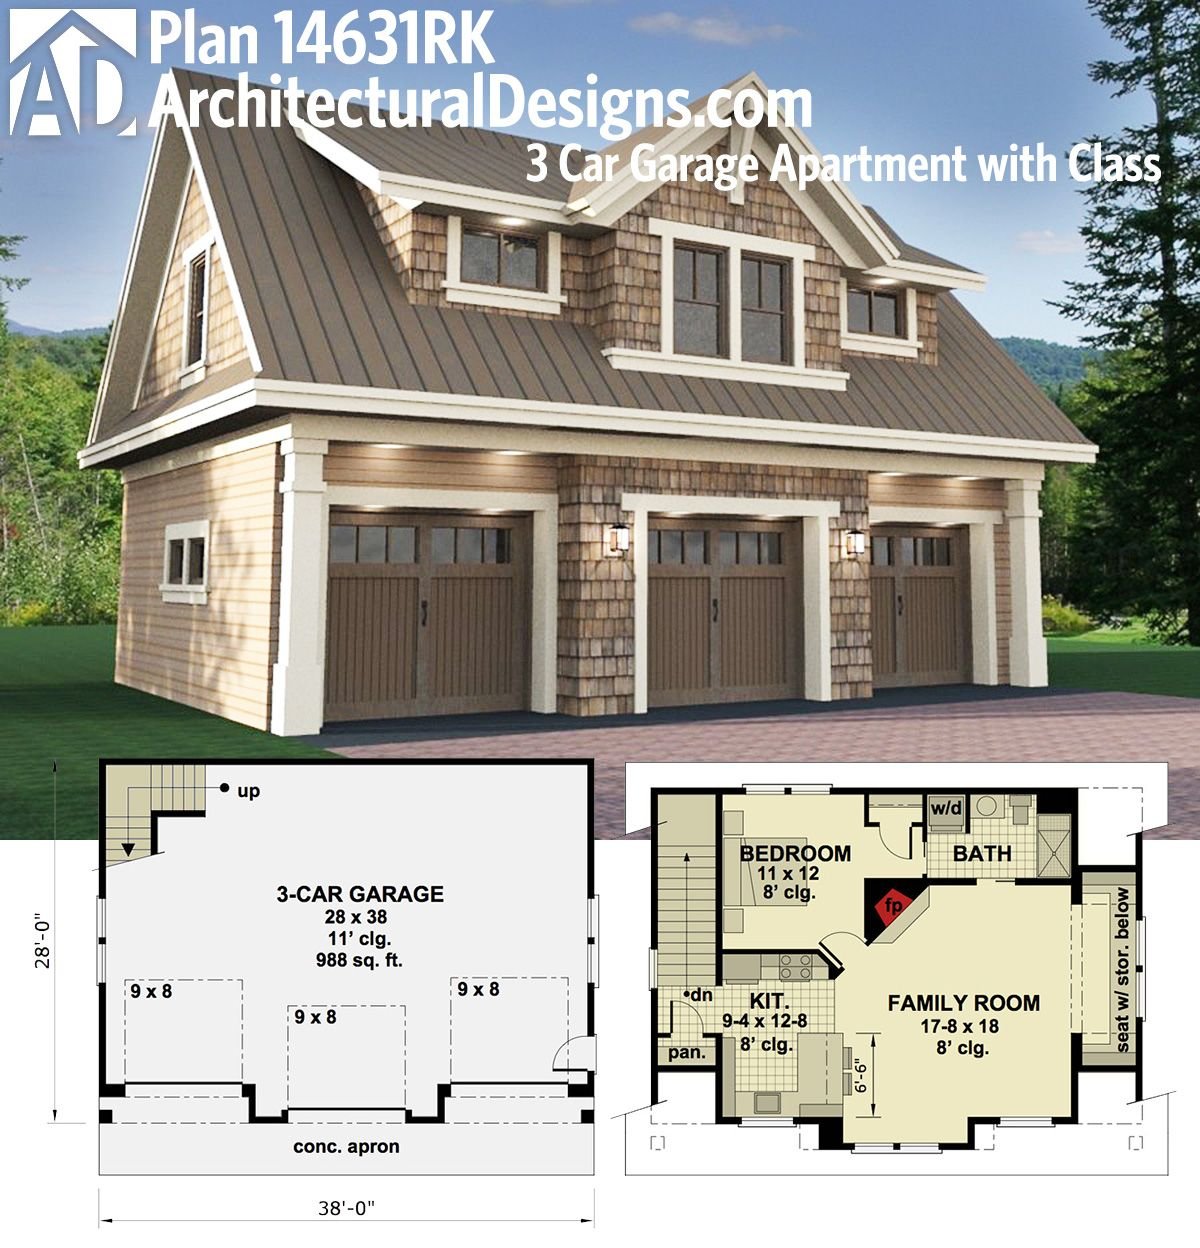 Architectural designs carriage house plan 14631rk gives for Diy 3 car garage